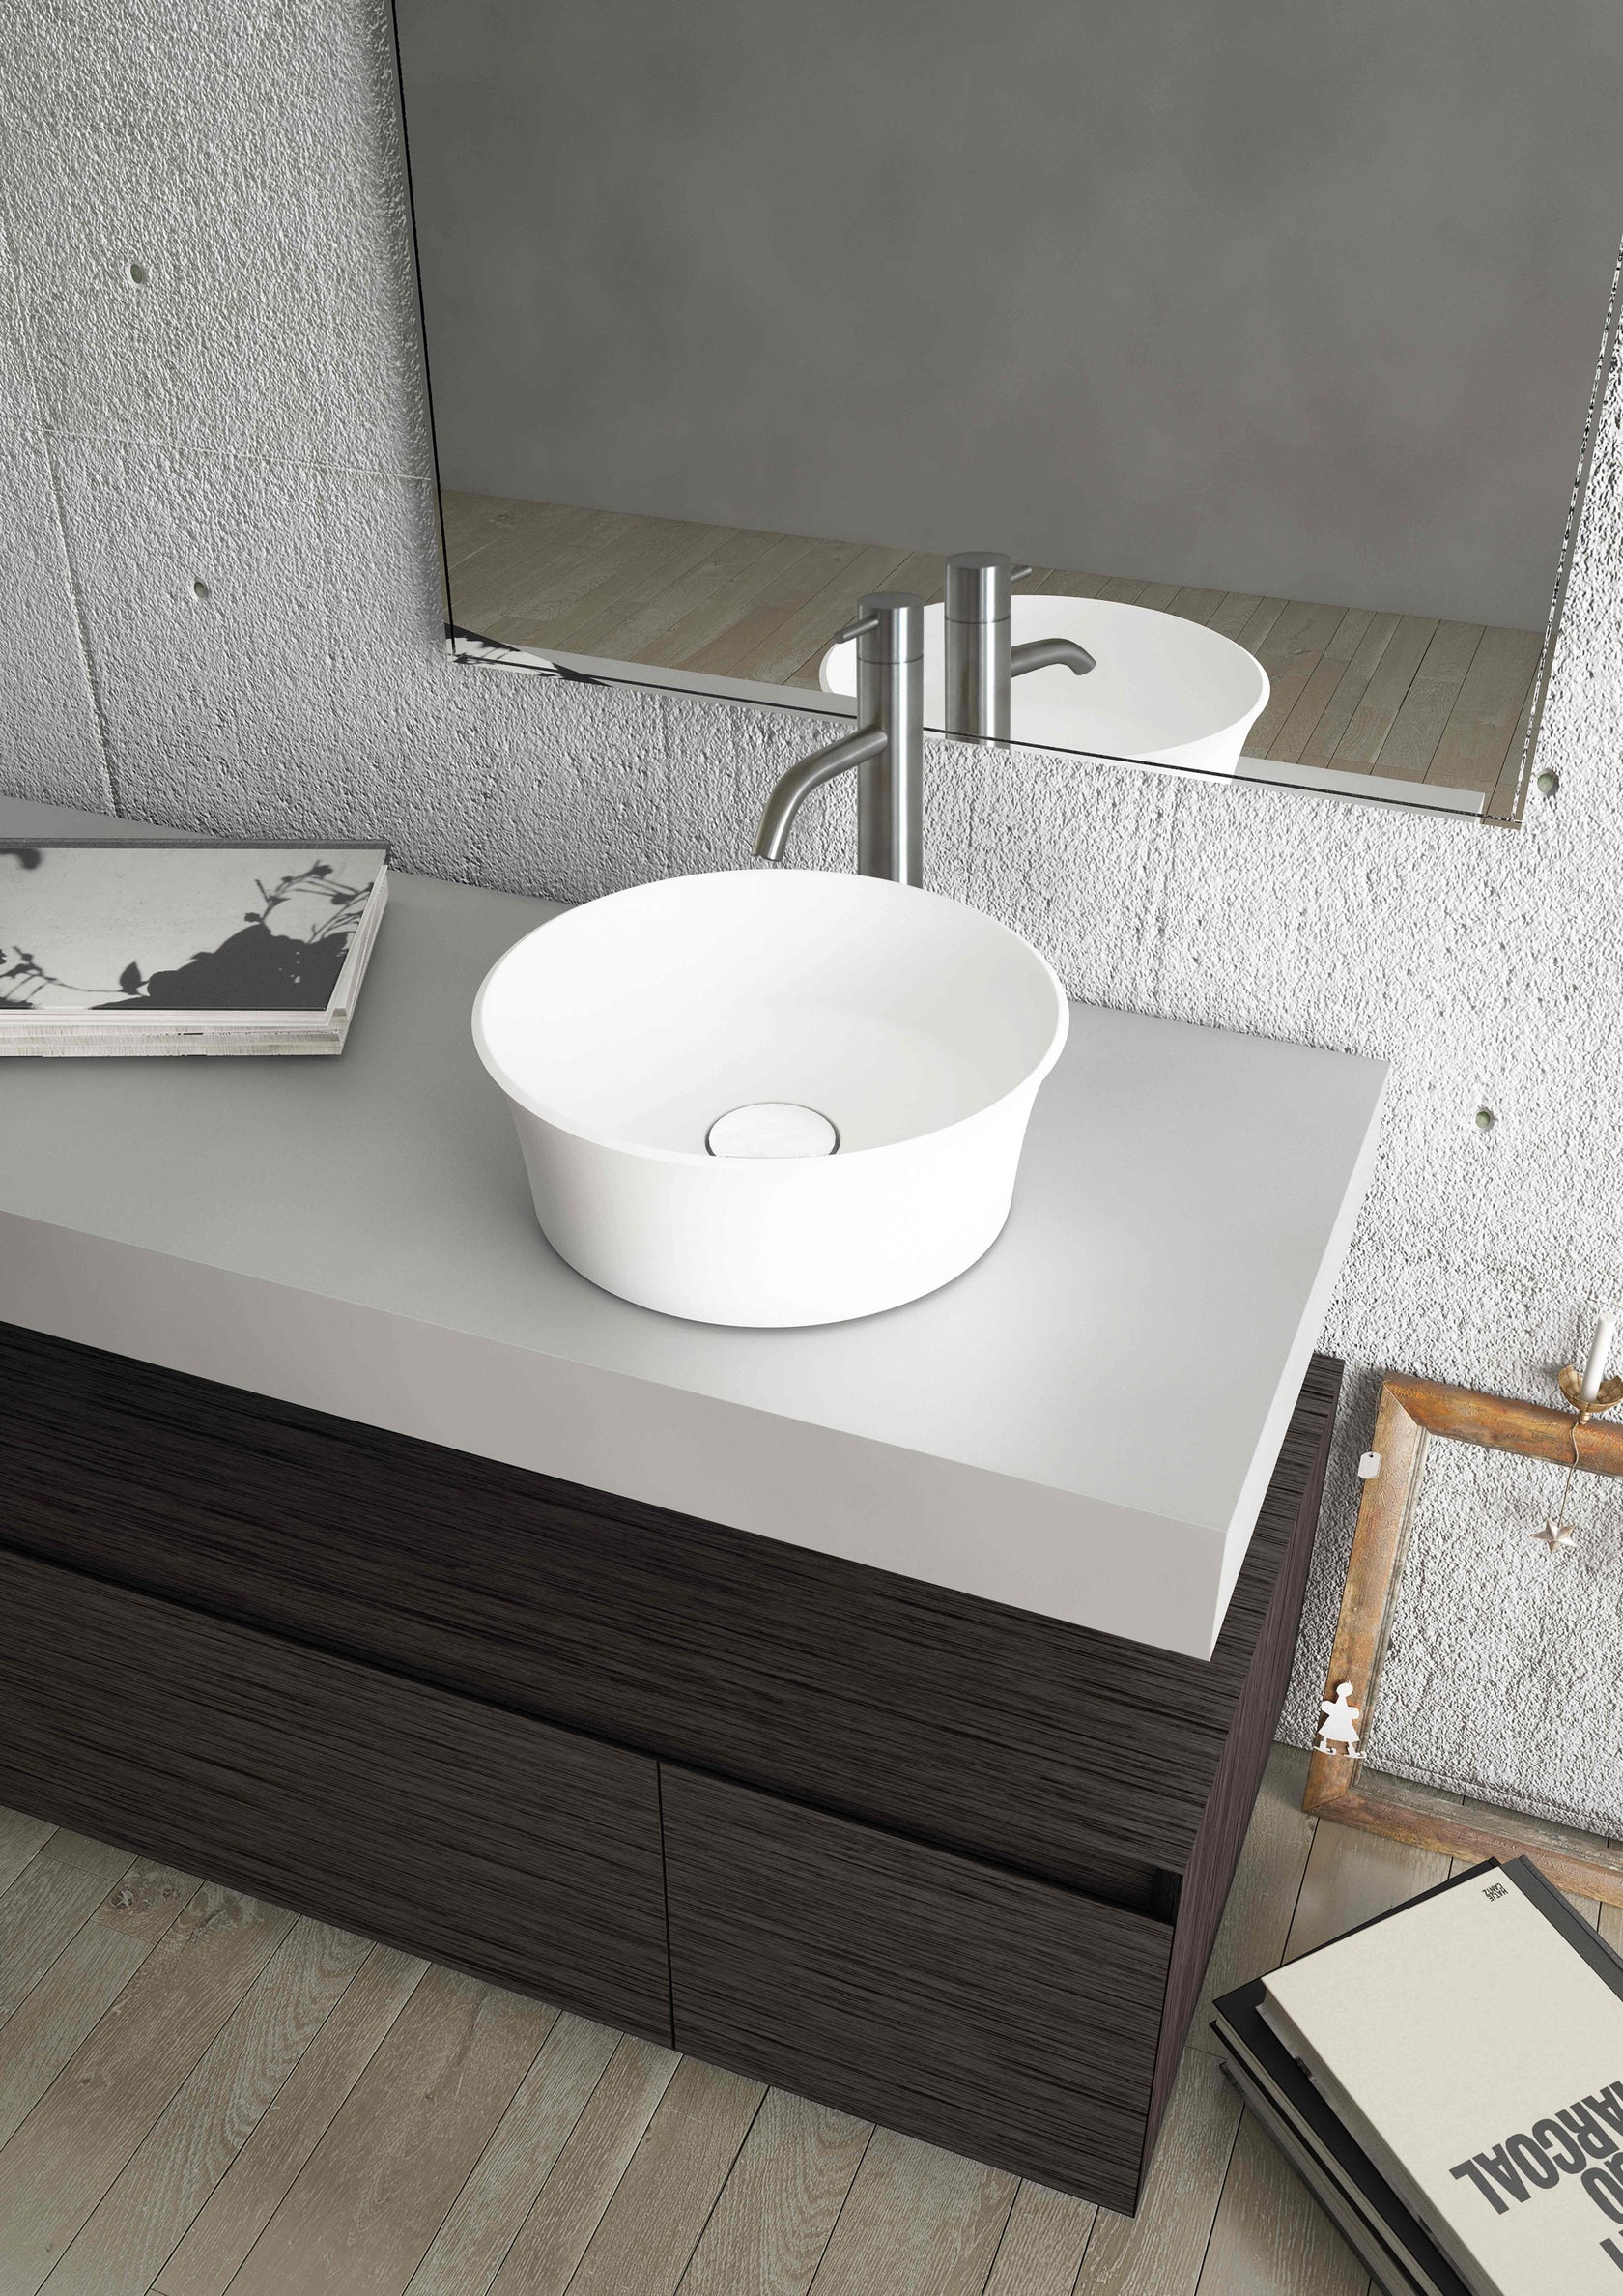 New bathware for 2016 architizer for Odd shaped kitchen sinks